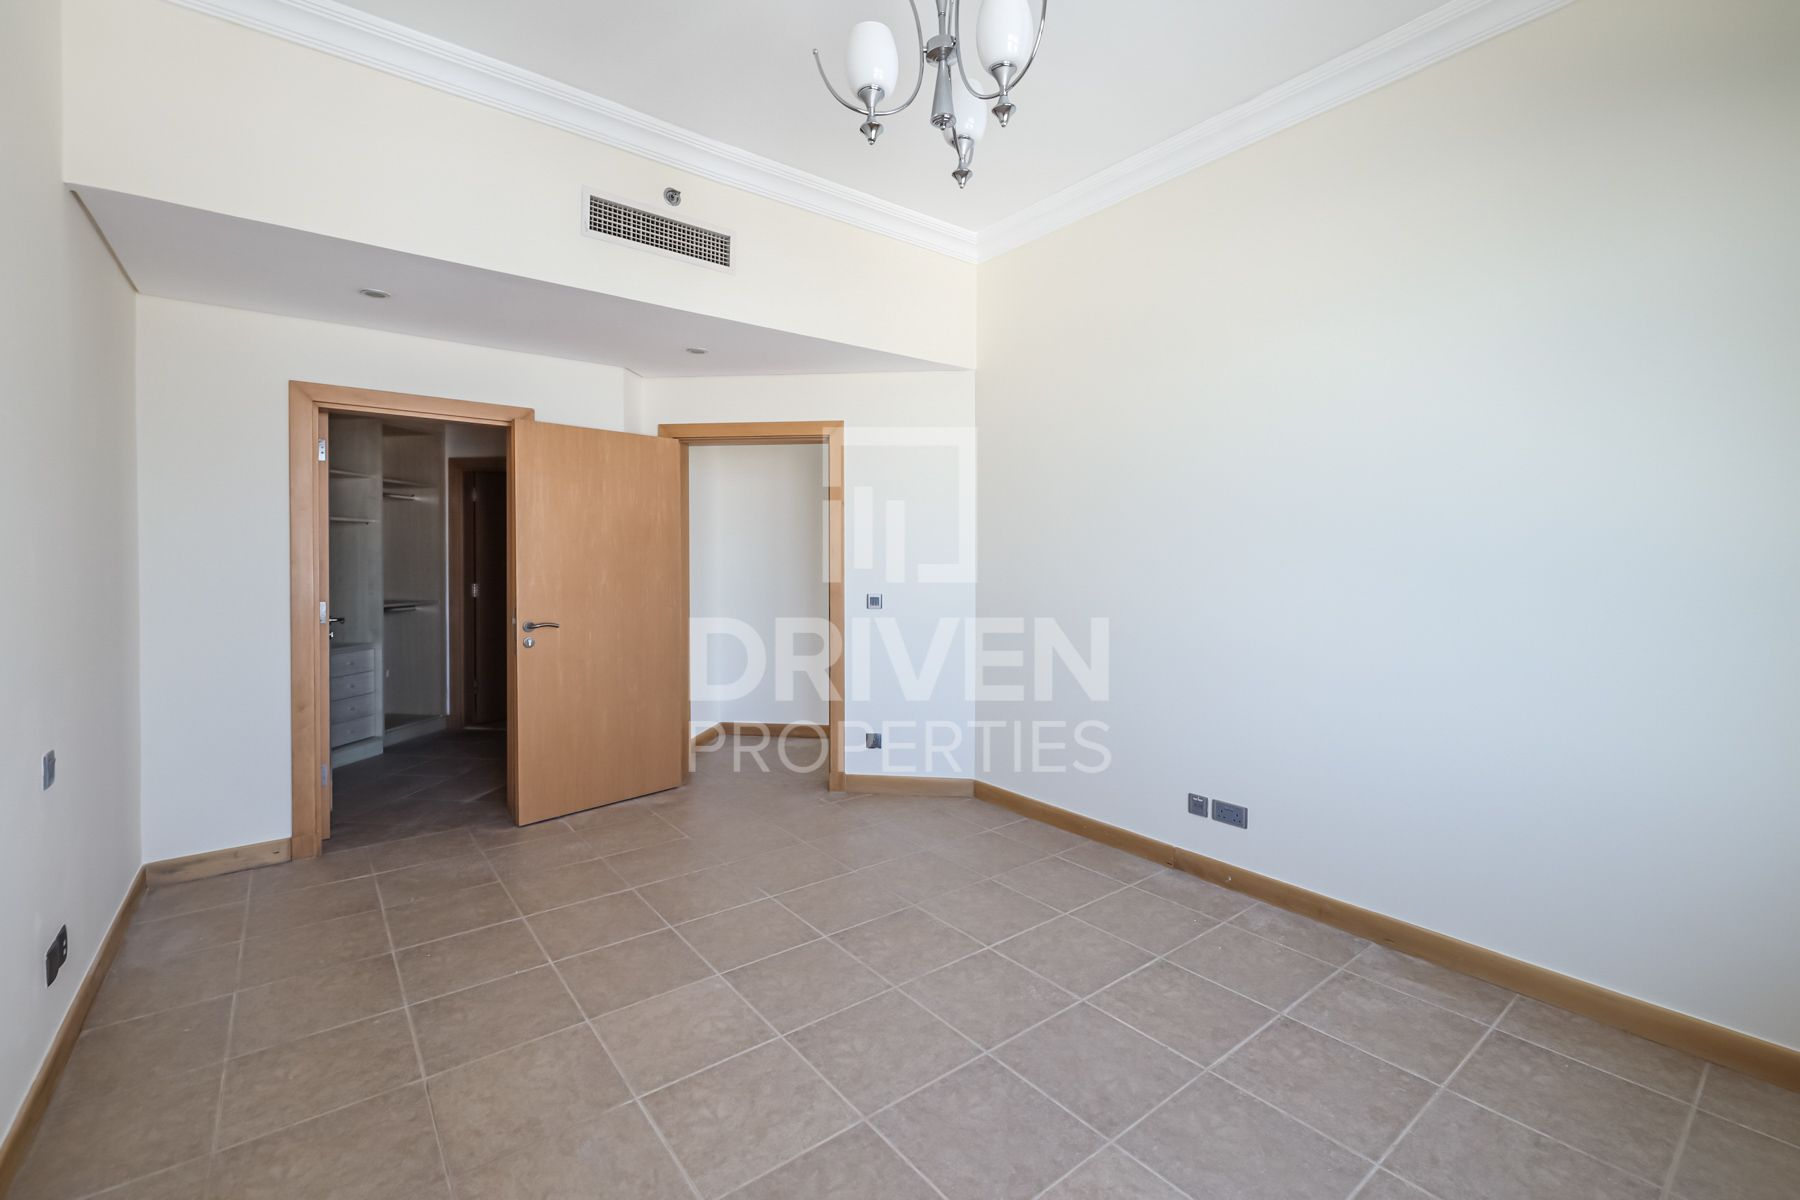 Apartment for Rent in Al Khudrawi - Palm Jumeirah